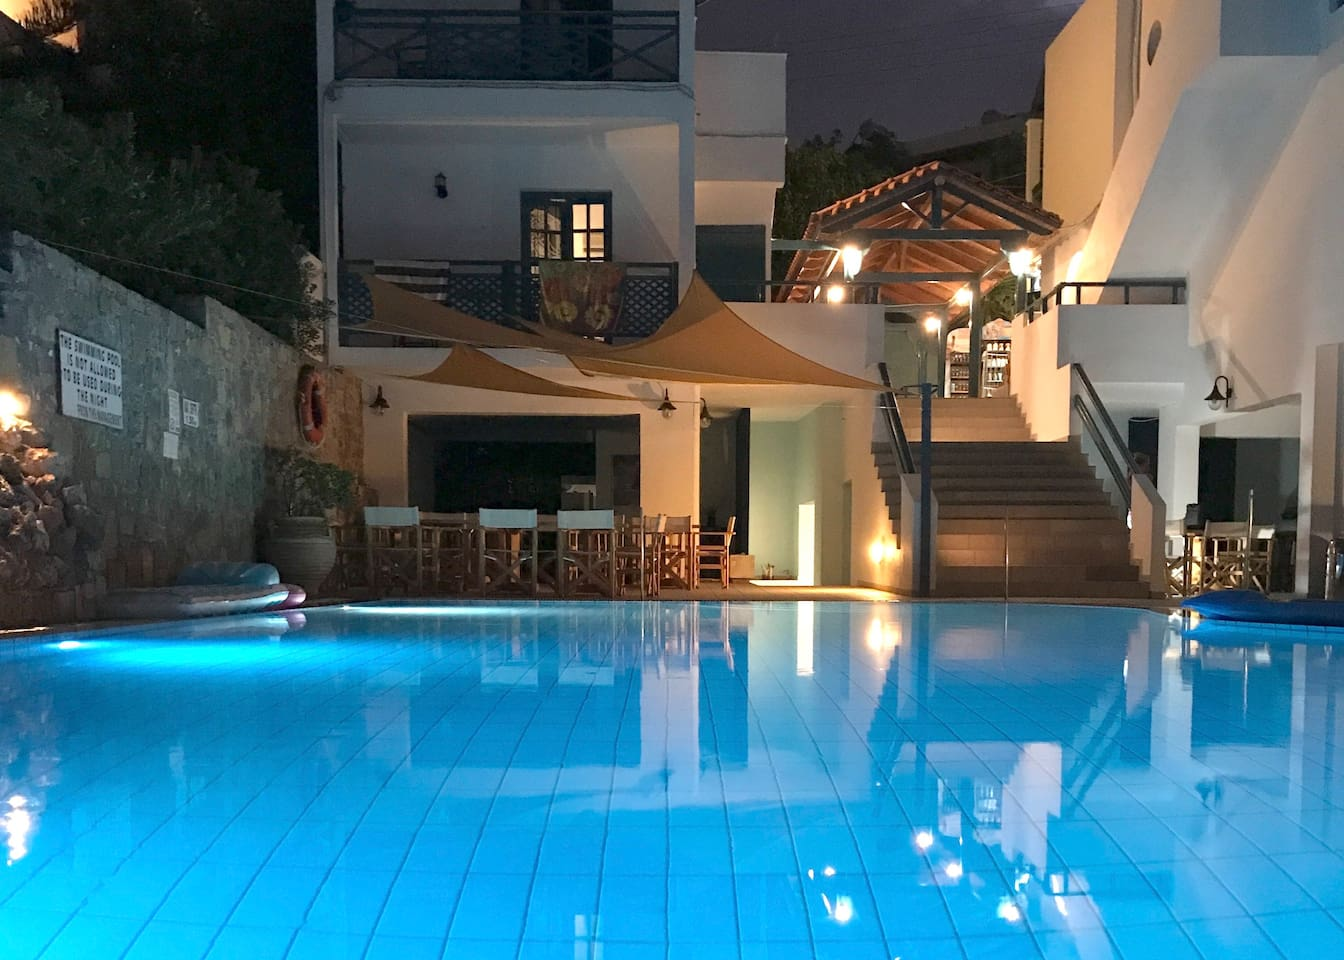 Swimming pool area right after sunset. The best time for a swim and glass of wine/ beer accompanied by Cretan varieties of cheese we love to share.